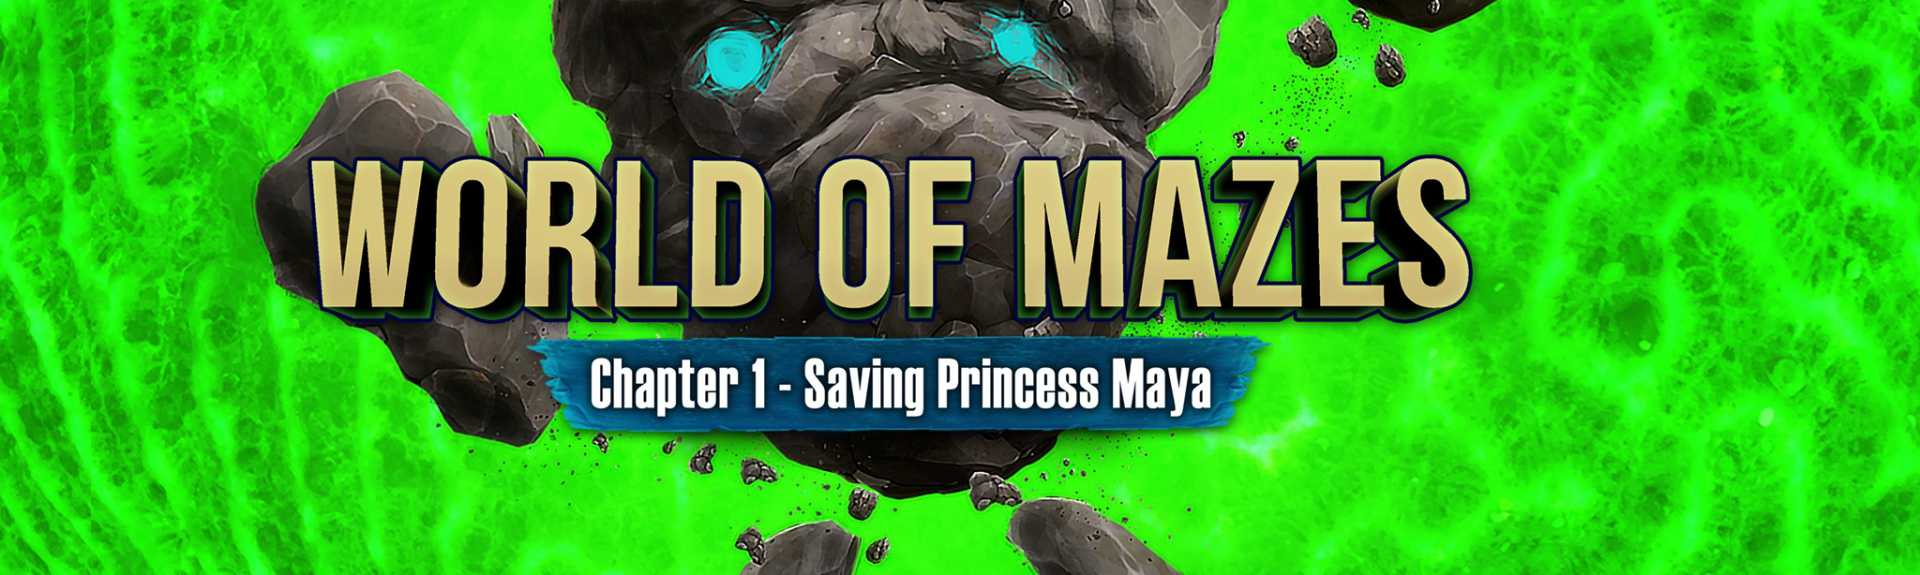 World of Mazes: Chapter 1 - Saving Princess Maya